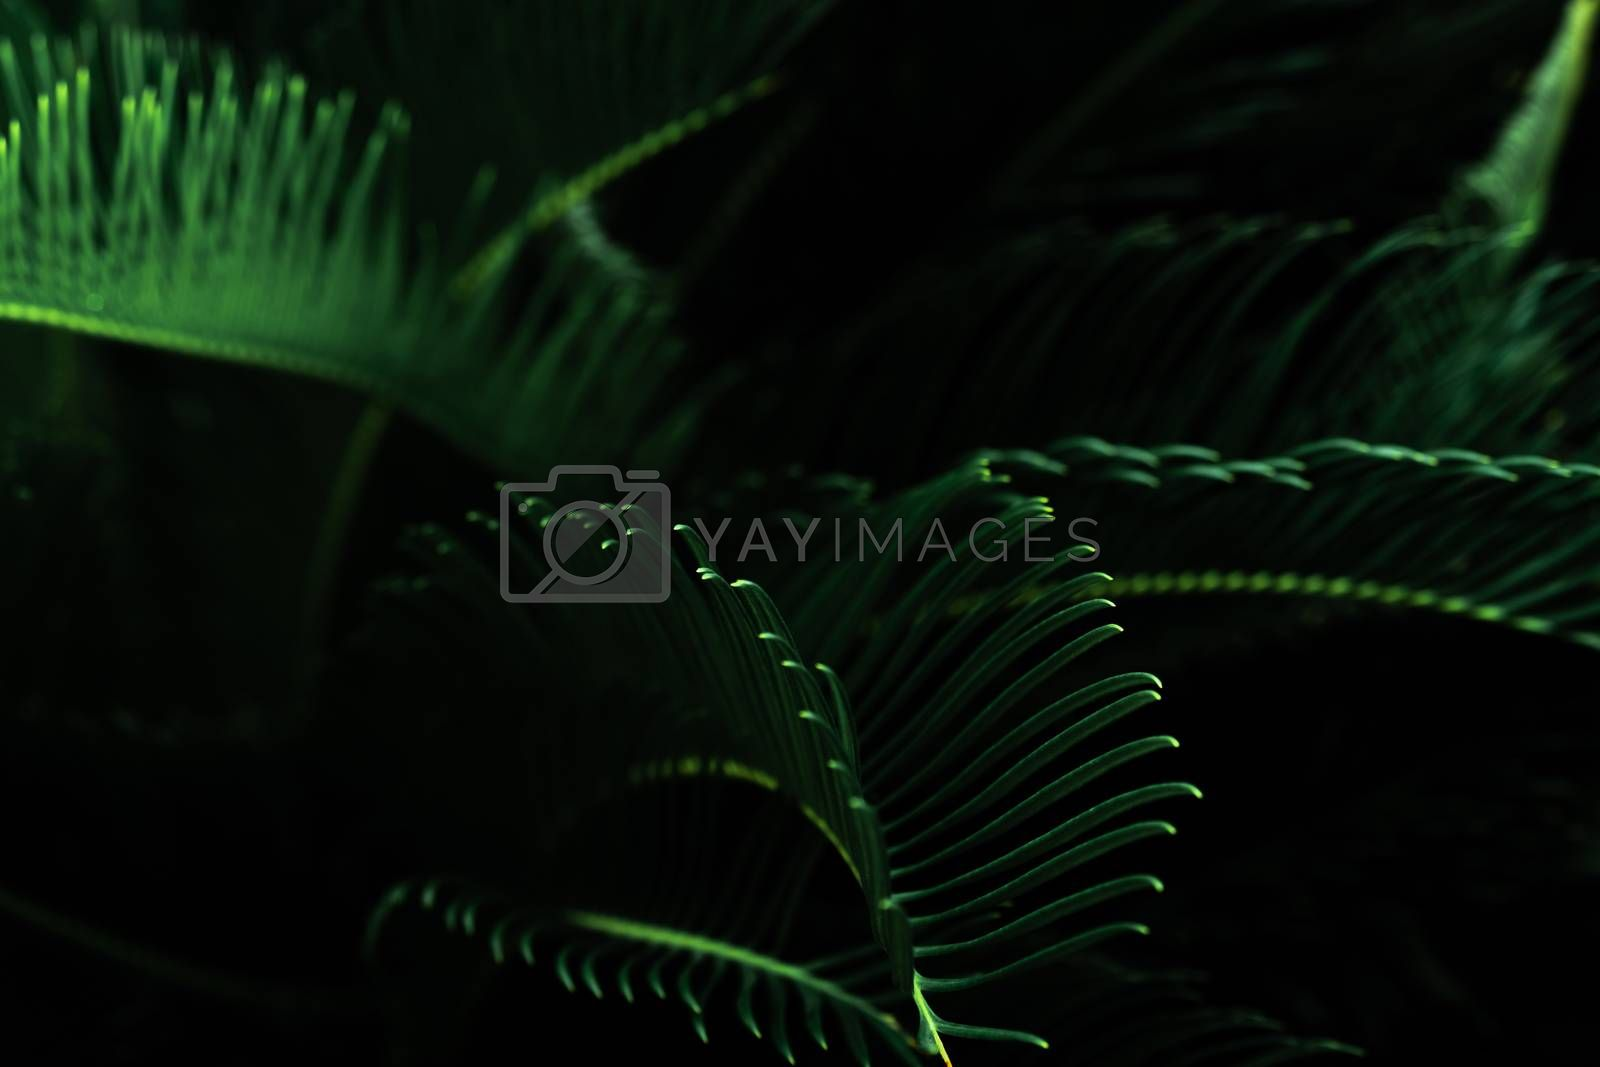 Dark green leaves in the garden. Green leaf texture. Nature abstract background. Tropical forest. Above view of dark green leaves with natural pattern at night. Tropical plant wallpaper. Greenery